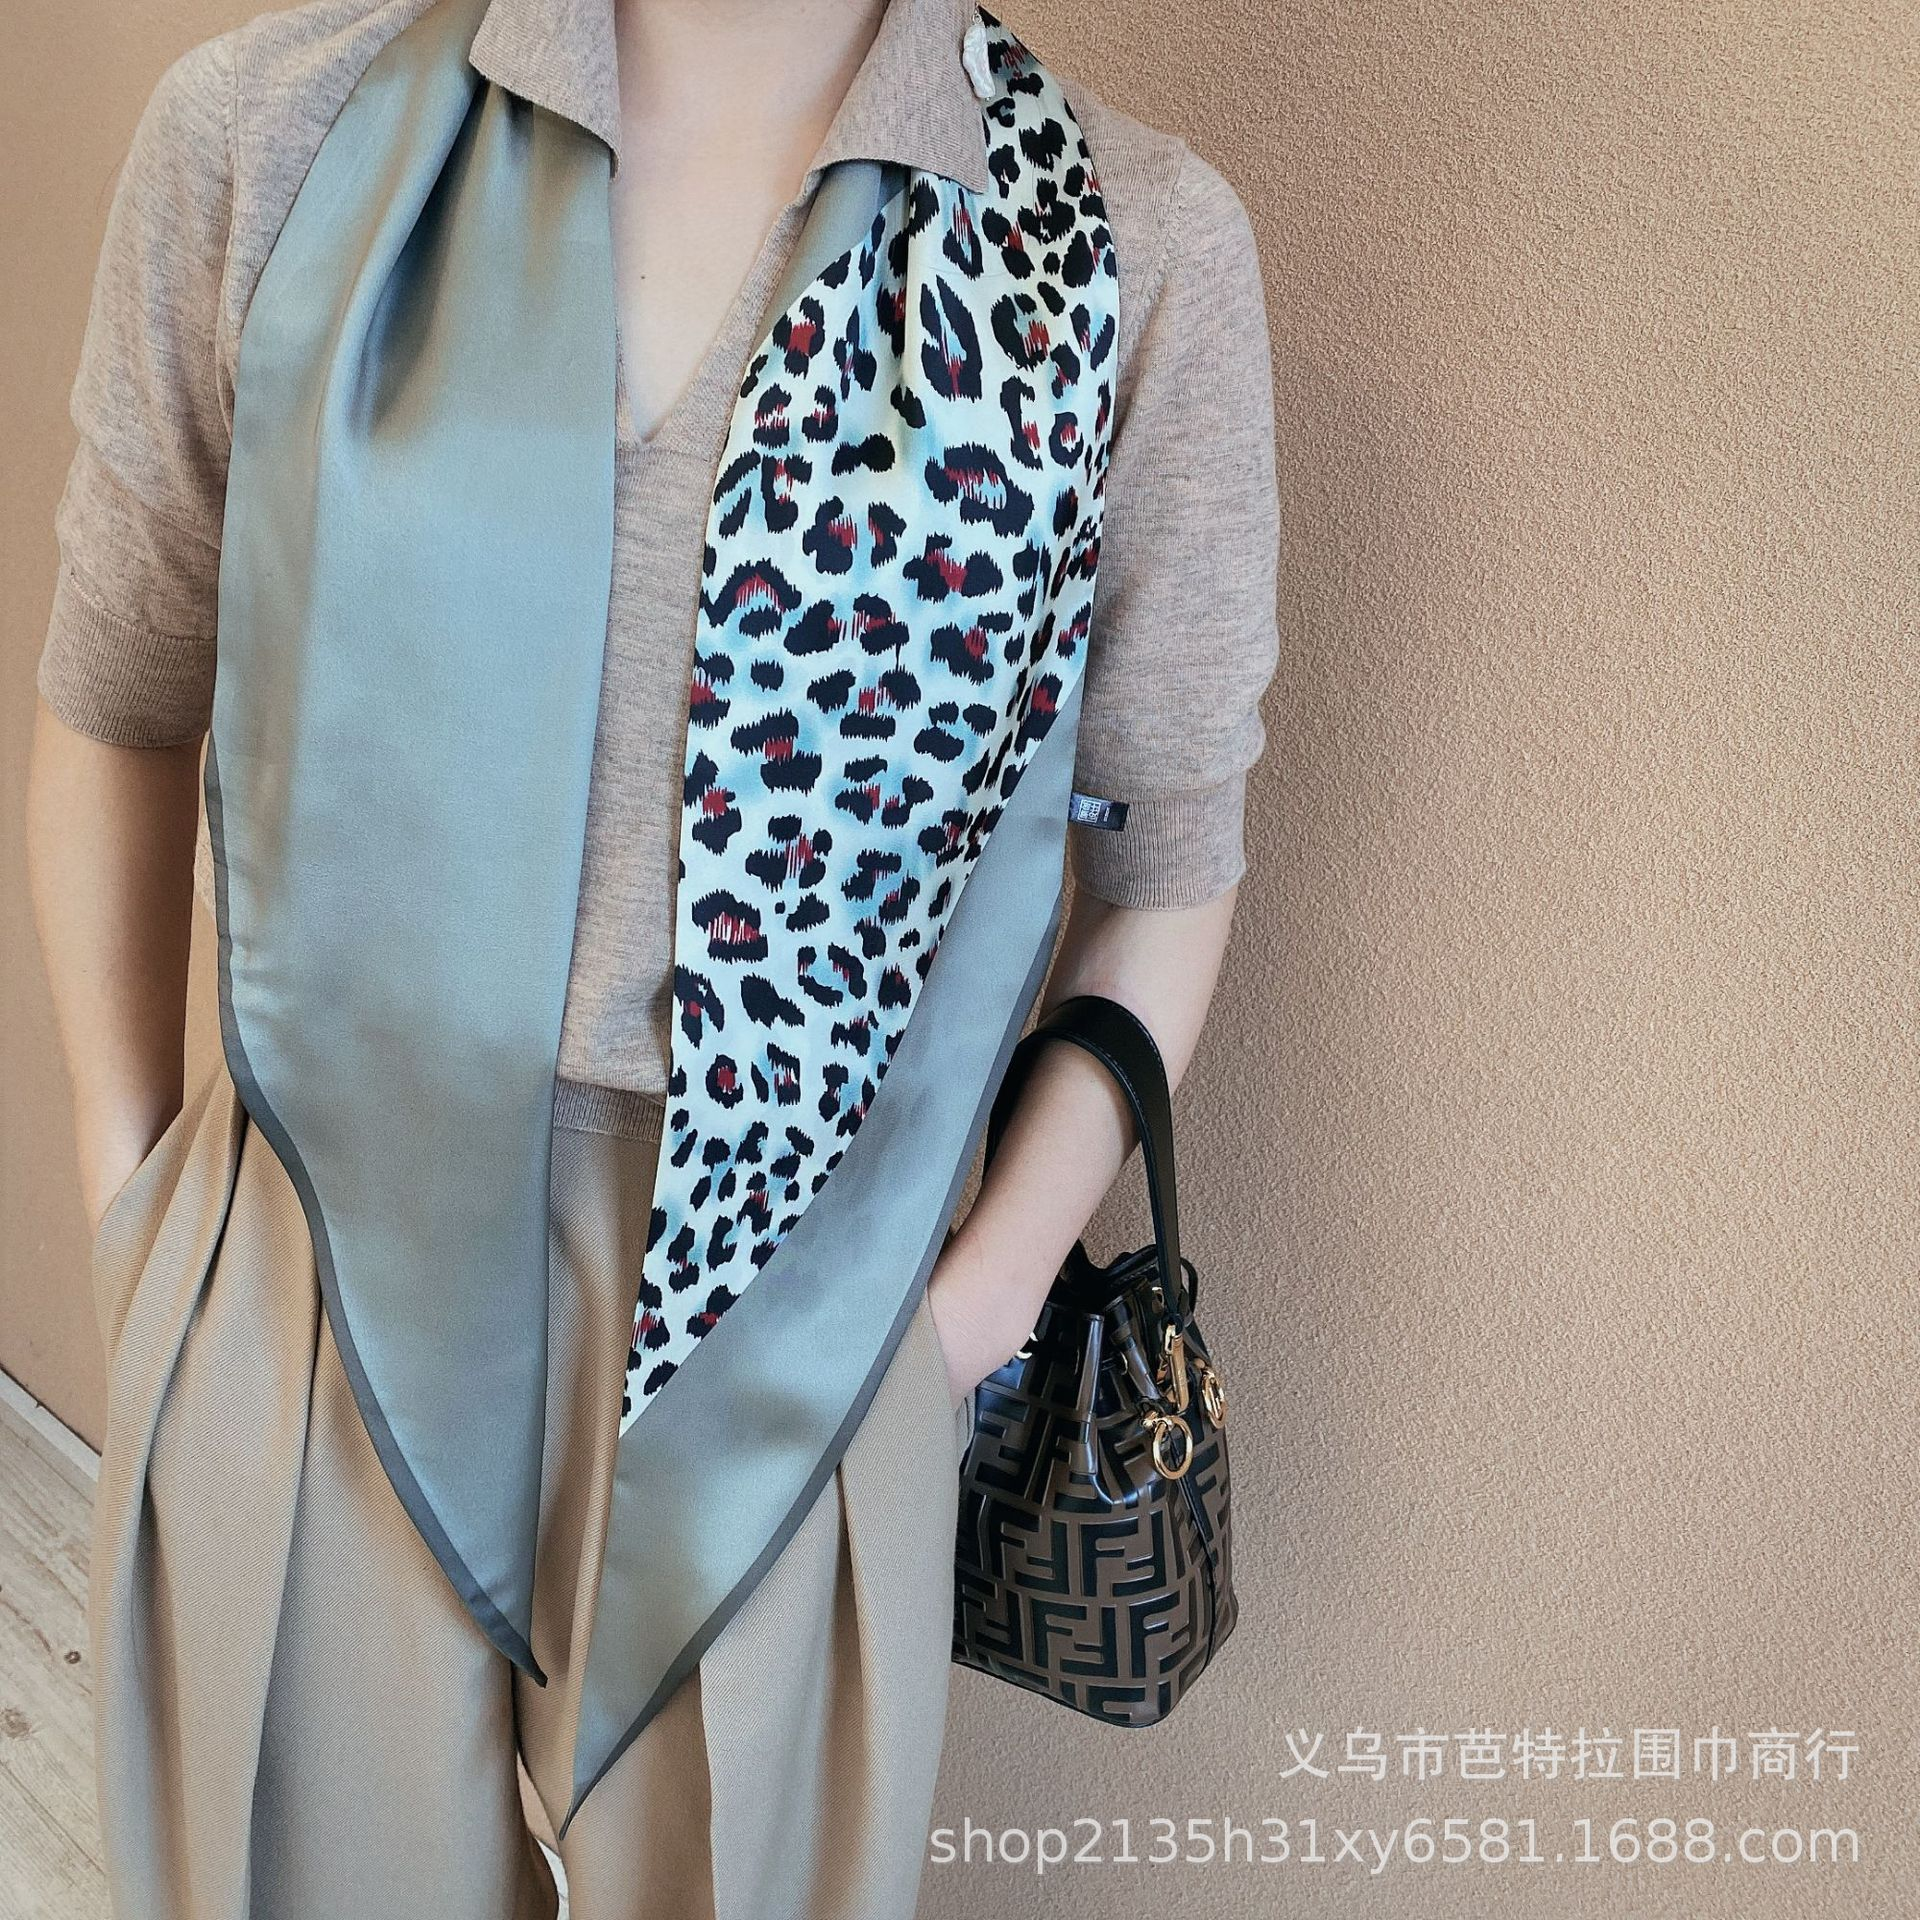 Elegant-Looking Scarf for a Sophisticated Office Wear